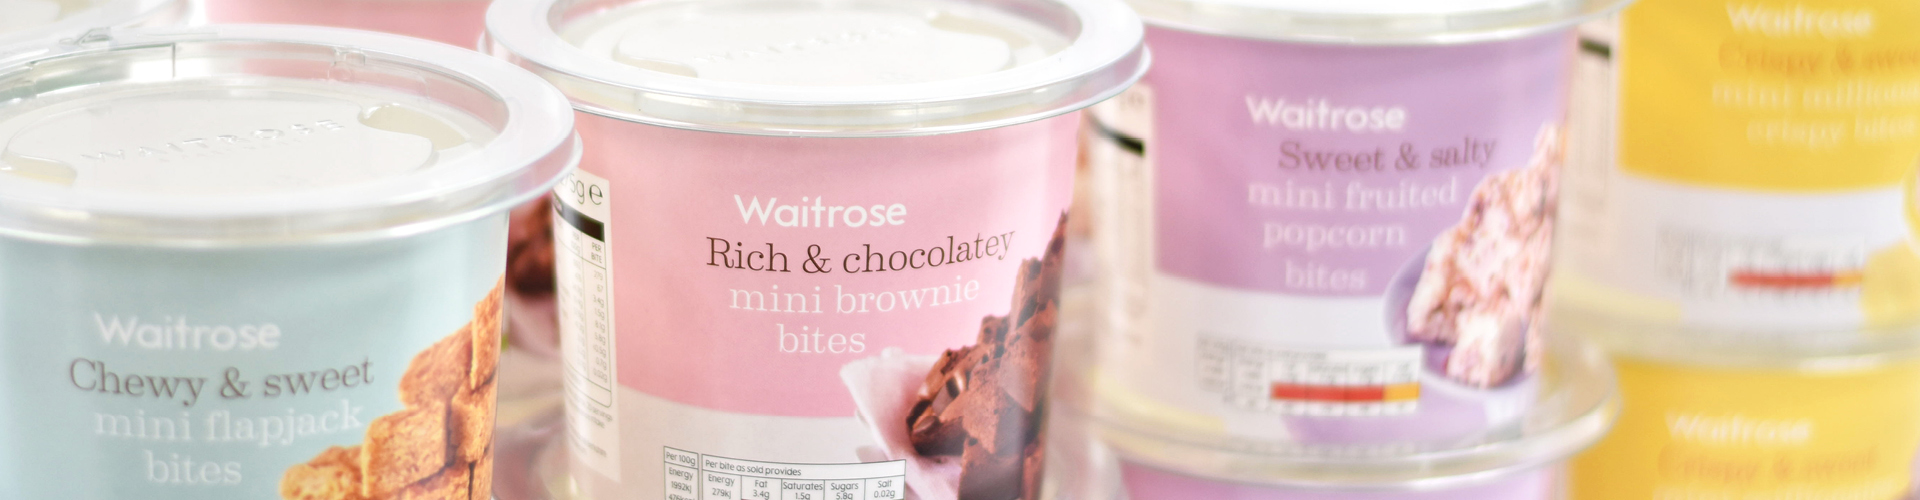 Waitrose & Partner Treat Tubs